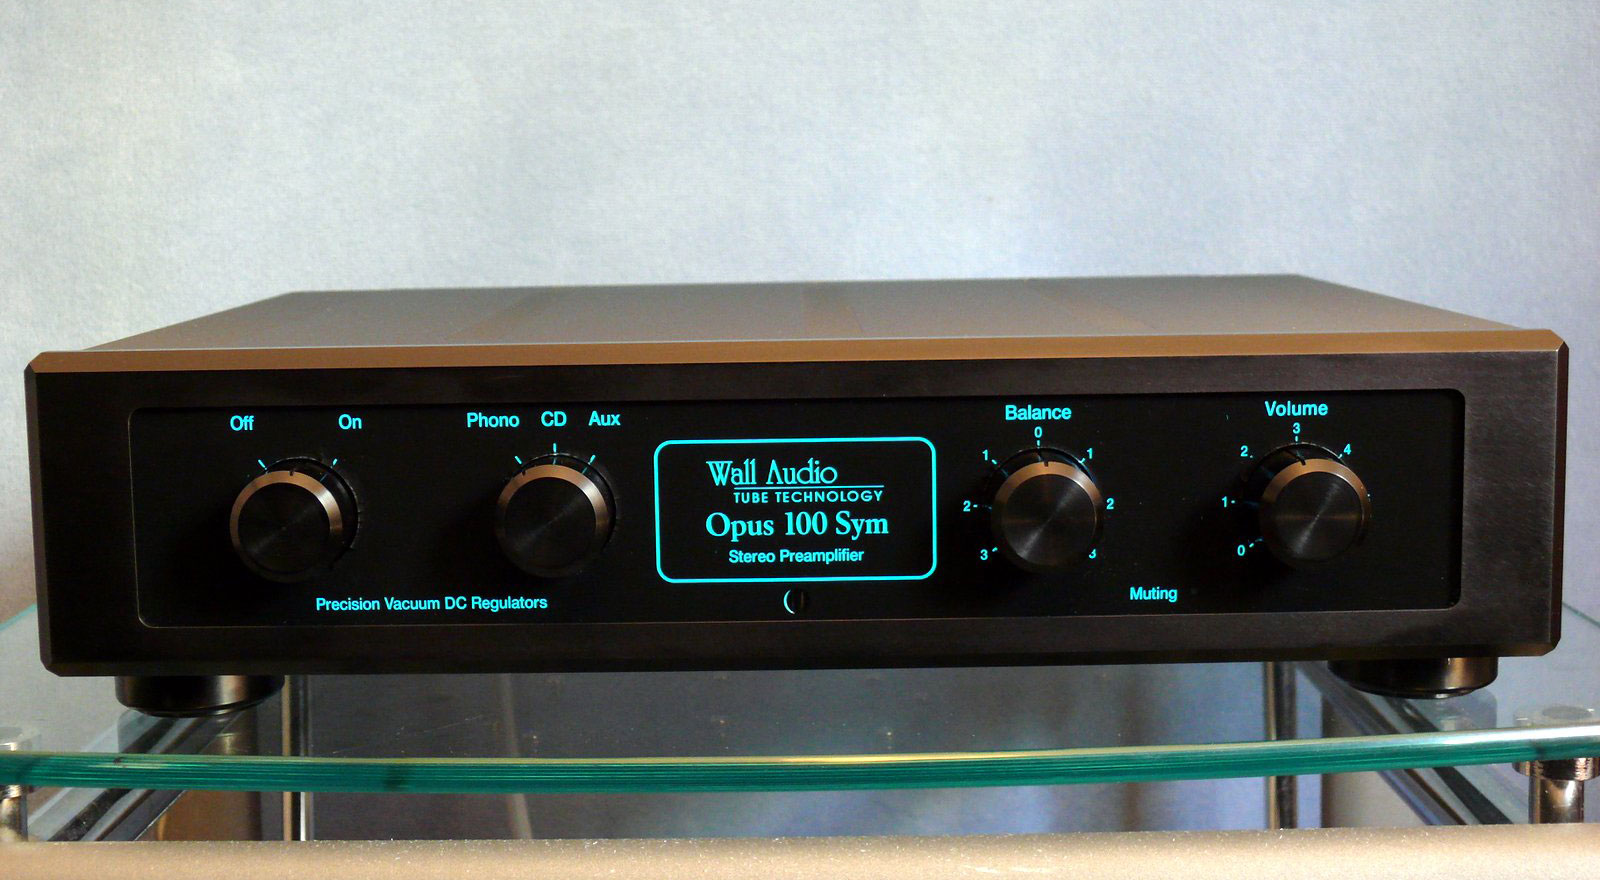 Wall Audio OPUS 100 SYM